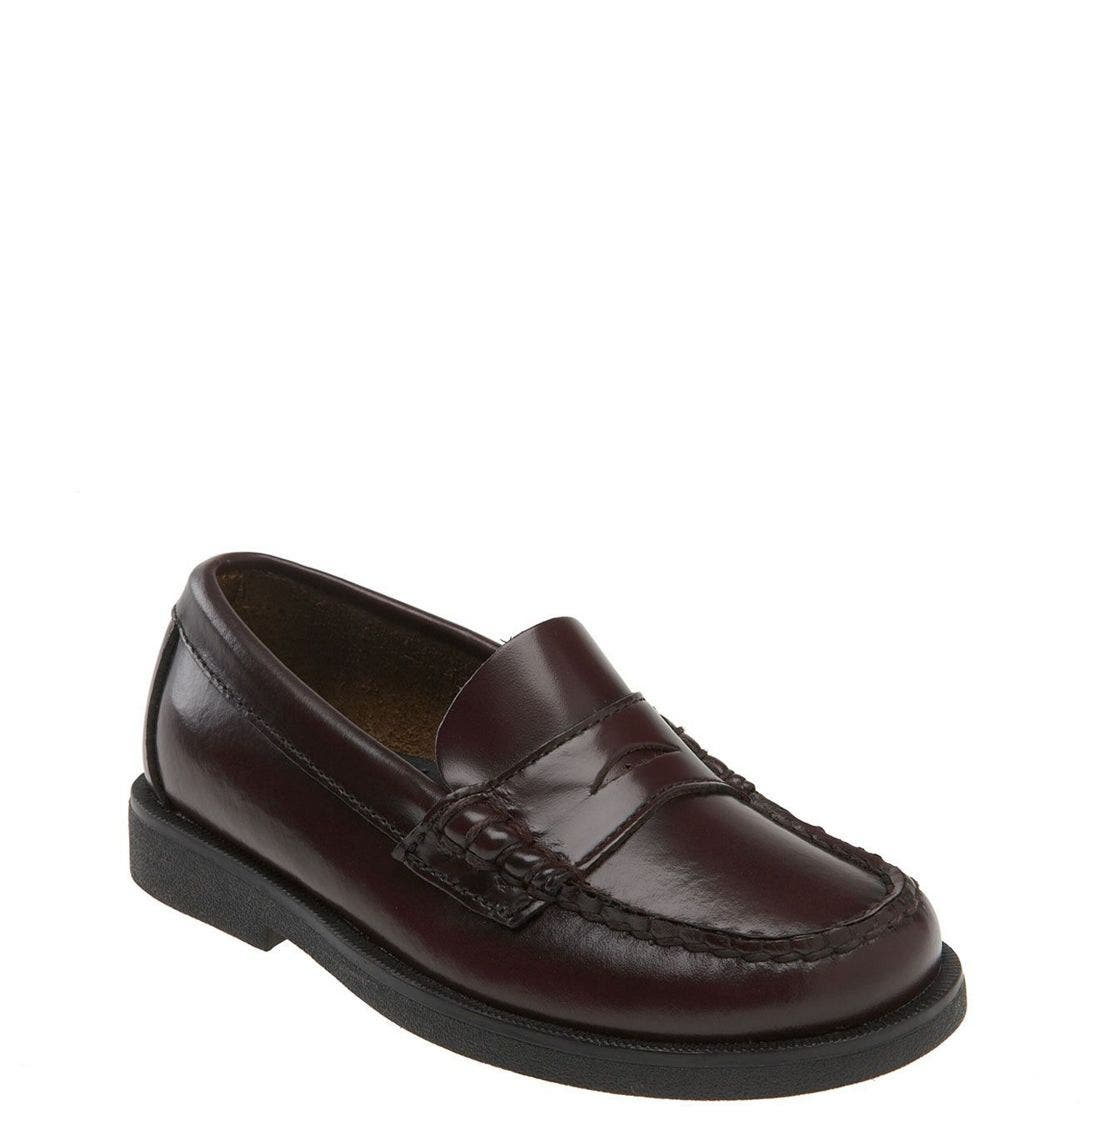 Sperry Kids 'Colton' Loafer (Little Kid & Big Kid)